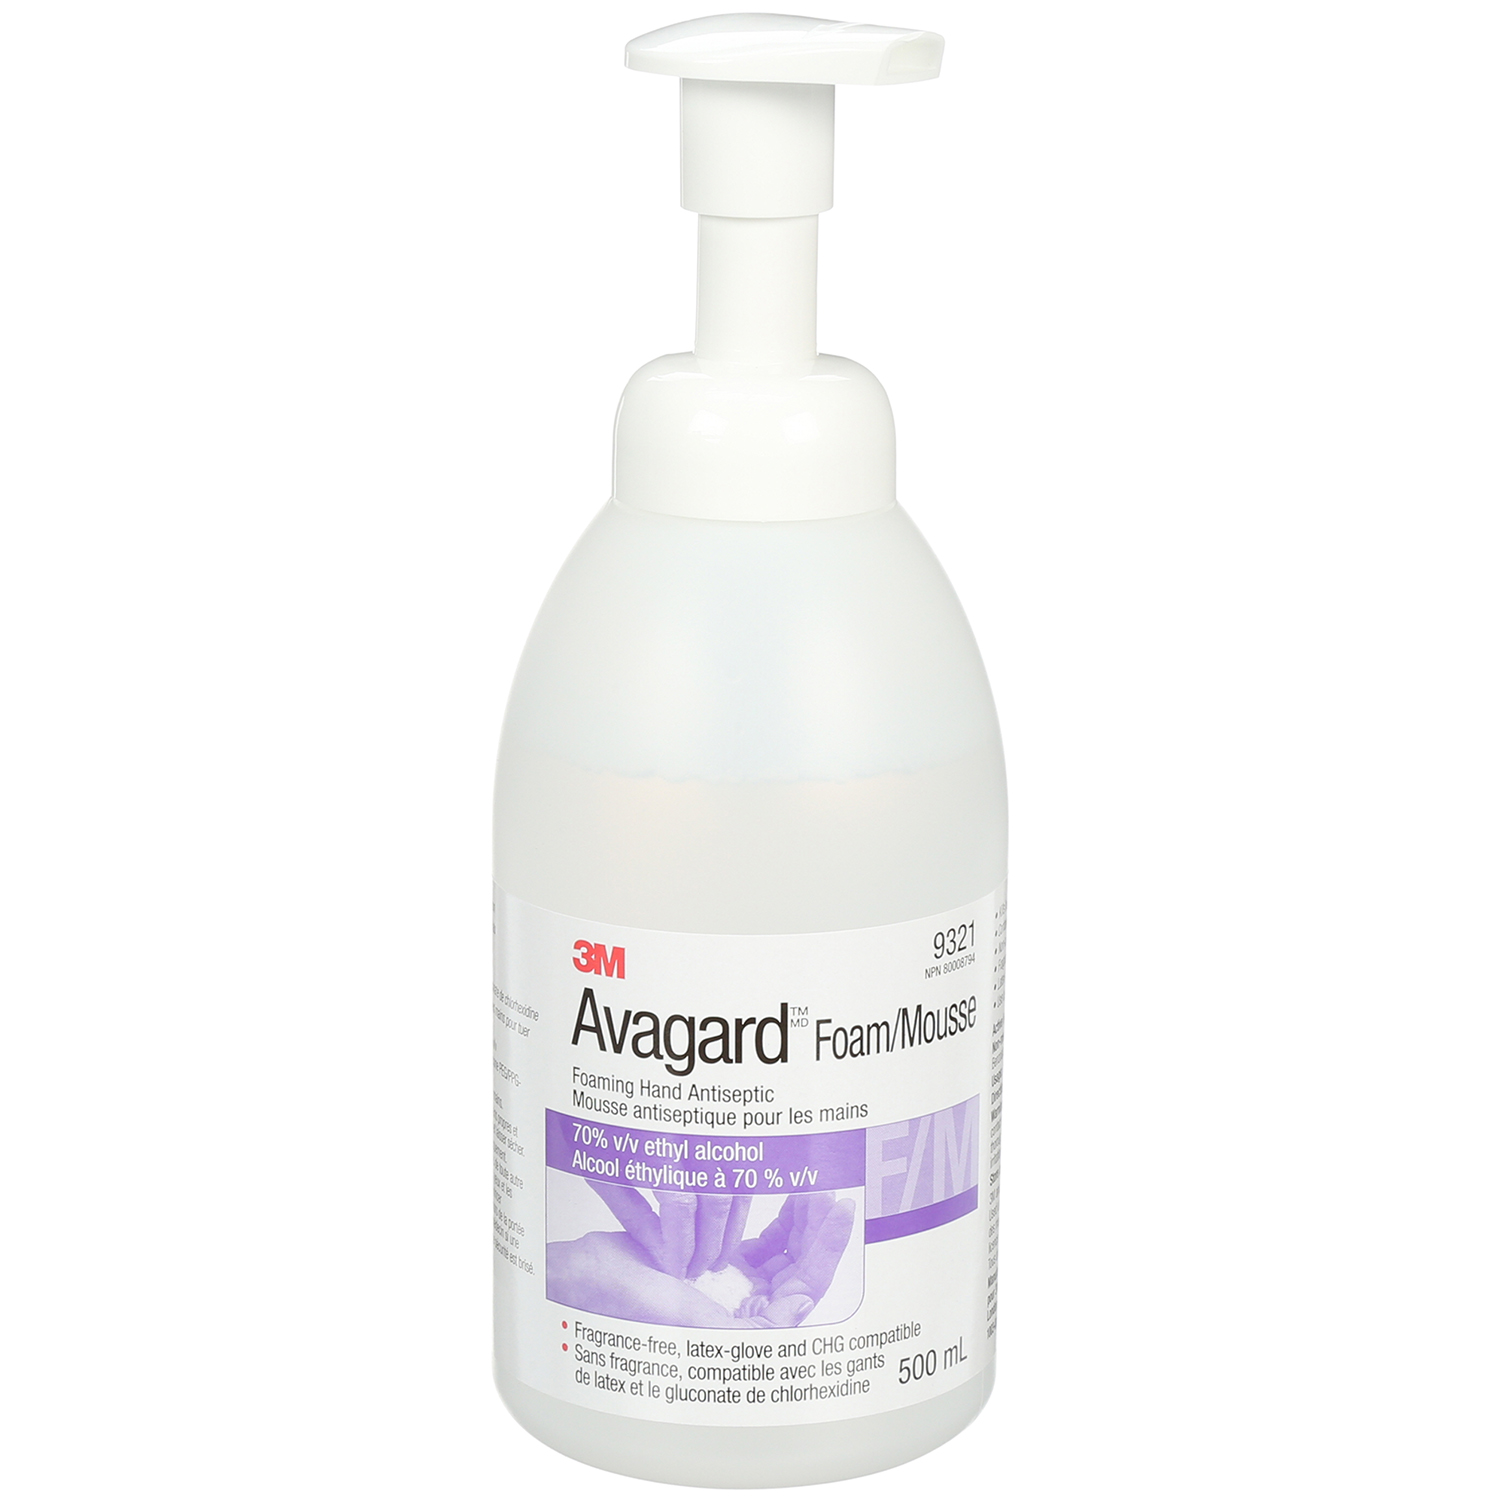 3M Avagard™ Hand Antiseptic, Foaming, Instant